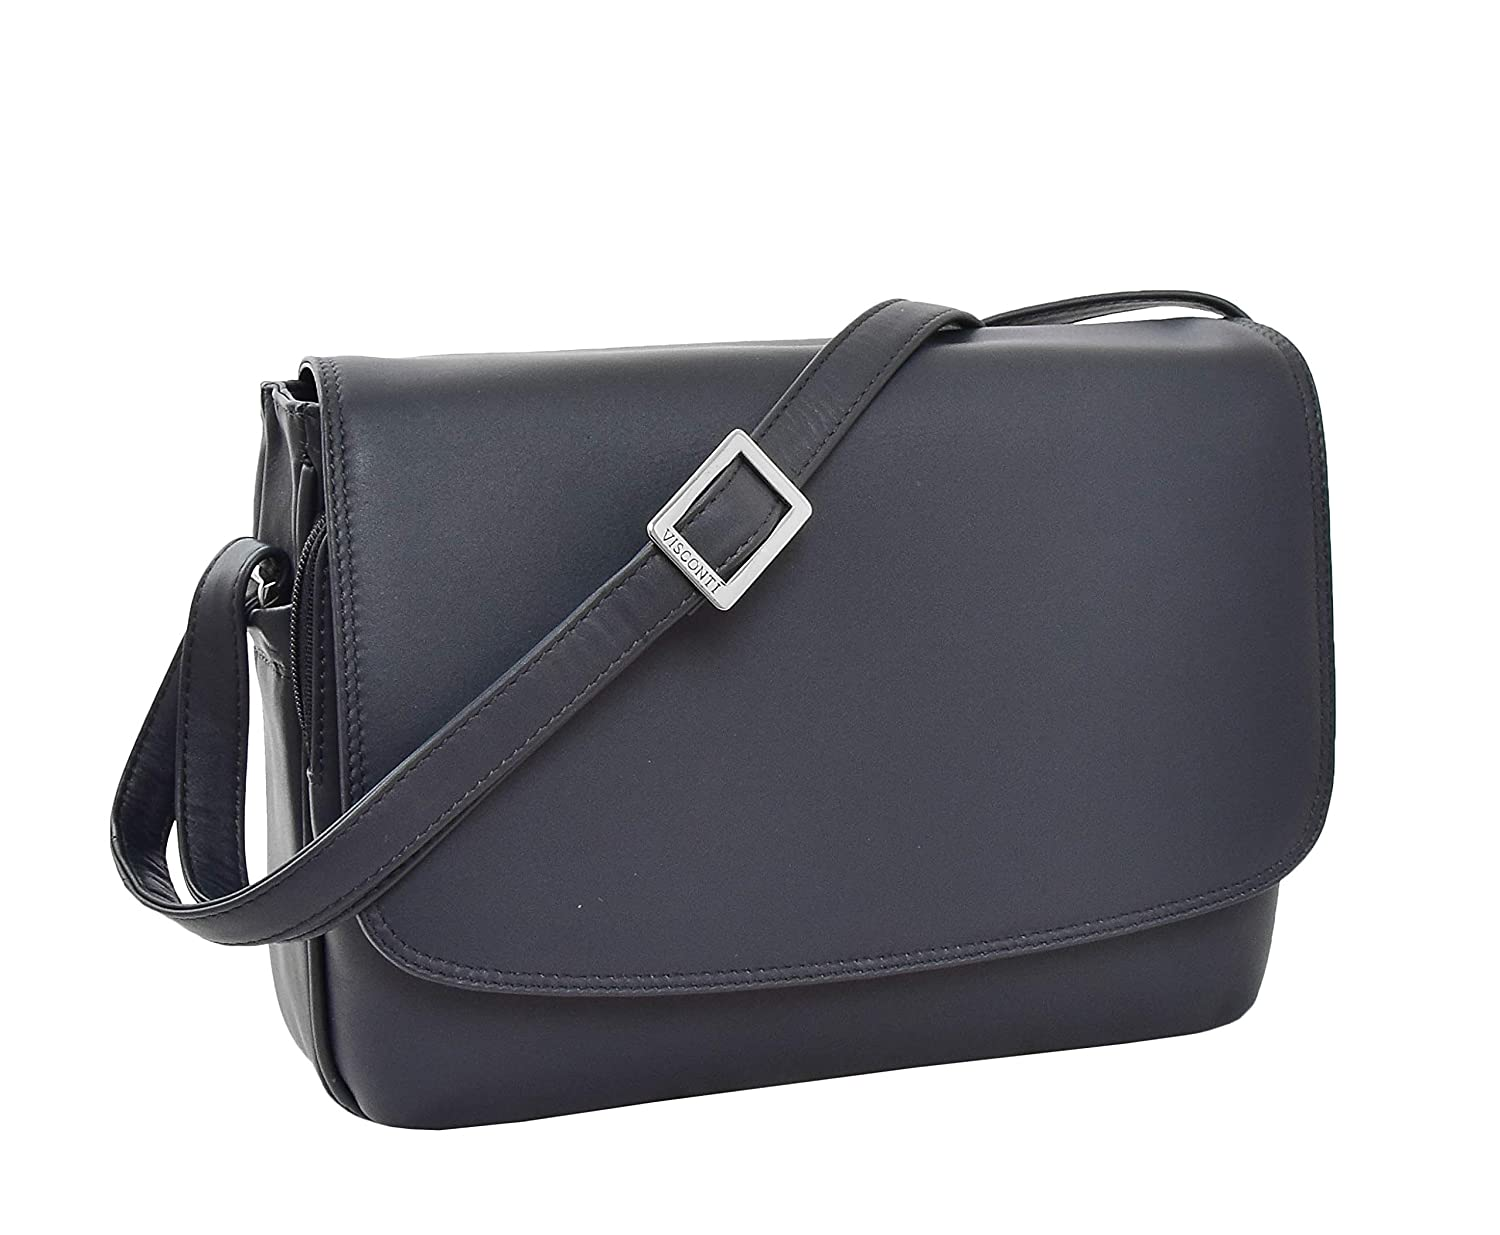 - Women's Real Leather Classic Style Flap Over Cross Body Shoulder Bag Maldives bluee New